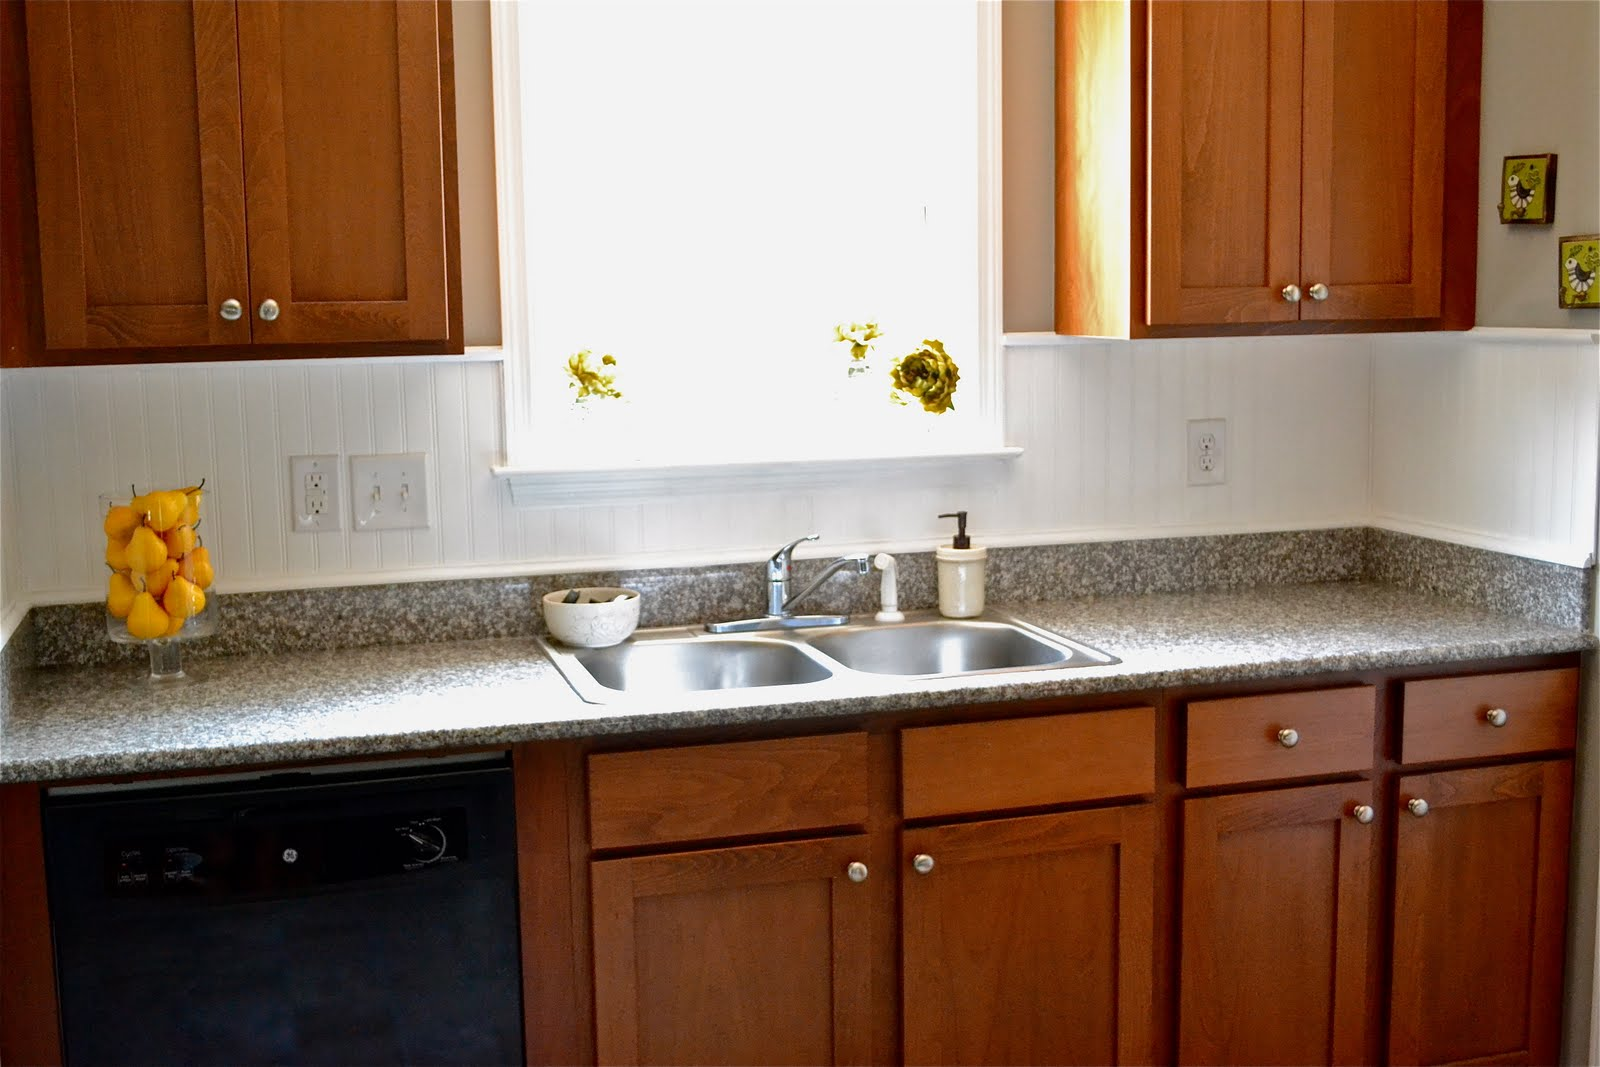 Backsplash Behind Sink Beadboard Backsplash Liz Marie Blog